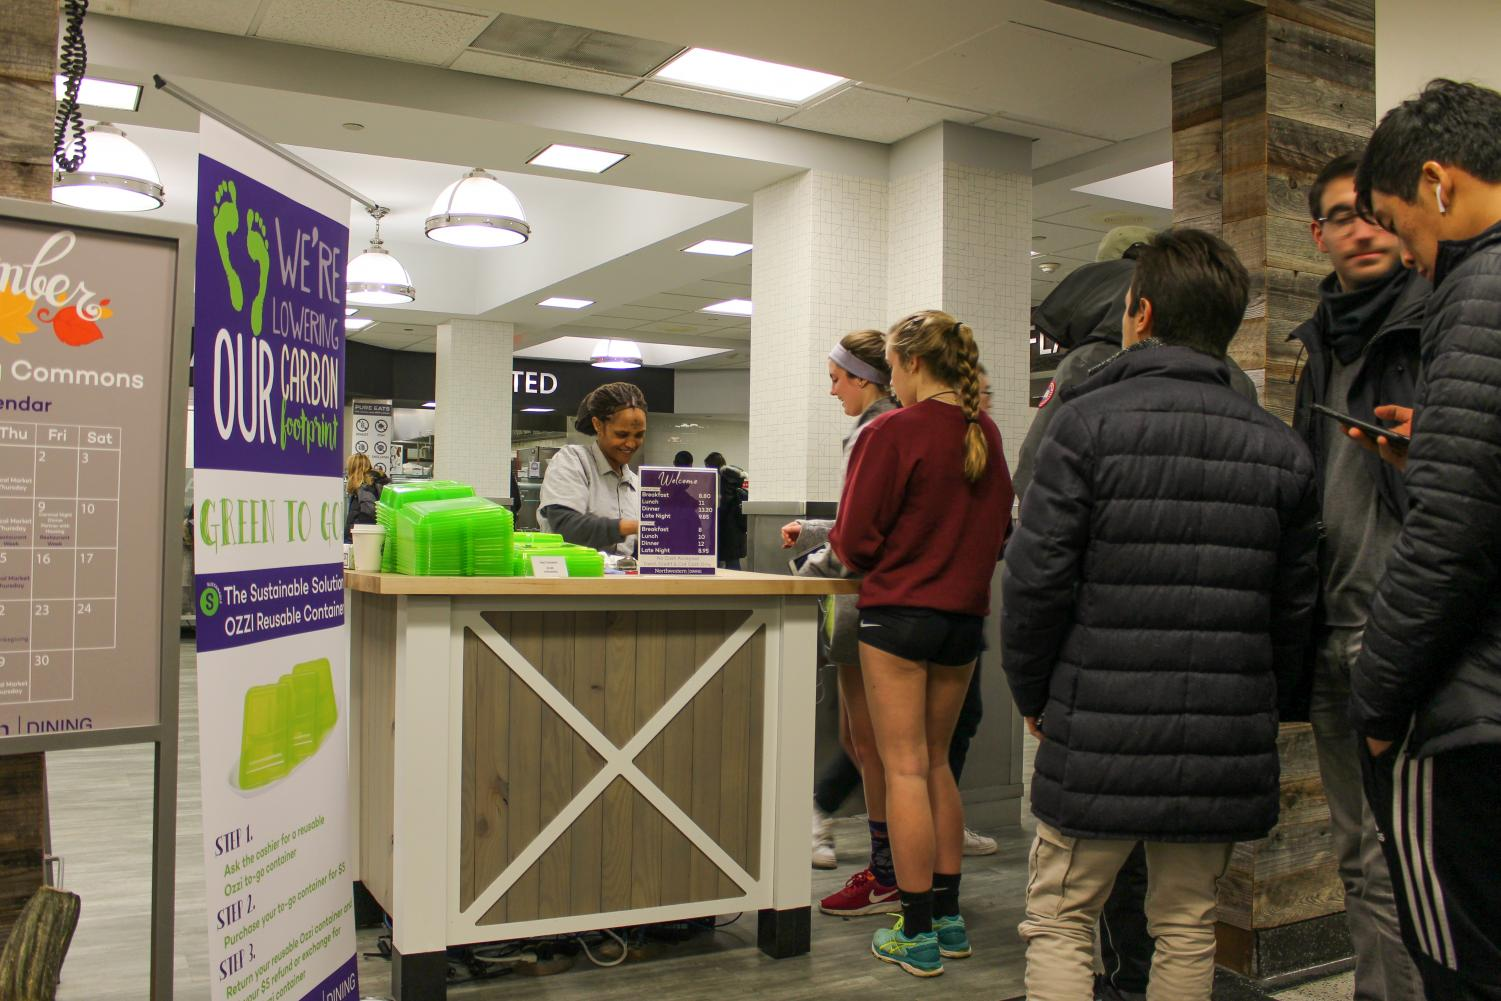 A Compass employee swipes NU students in to Sargent Hall. Northwestern's chapter of Students Organizing for Labor Rights raised more than $2,500 overnight to pay for ridesharing services for Compass employees in the cold temperatures.